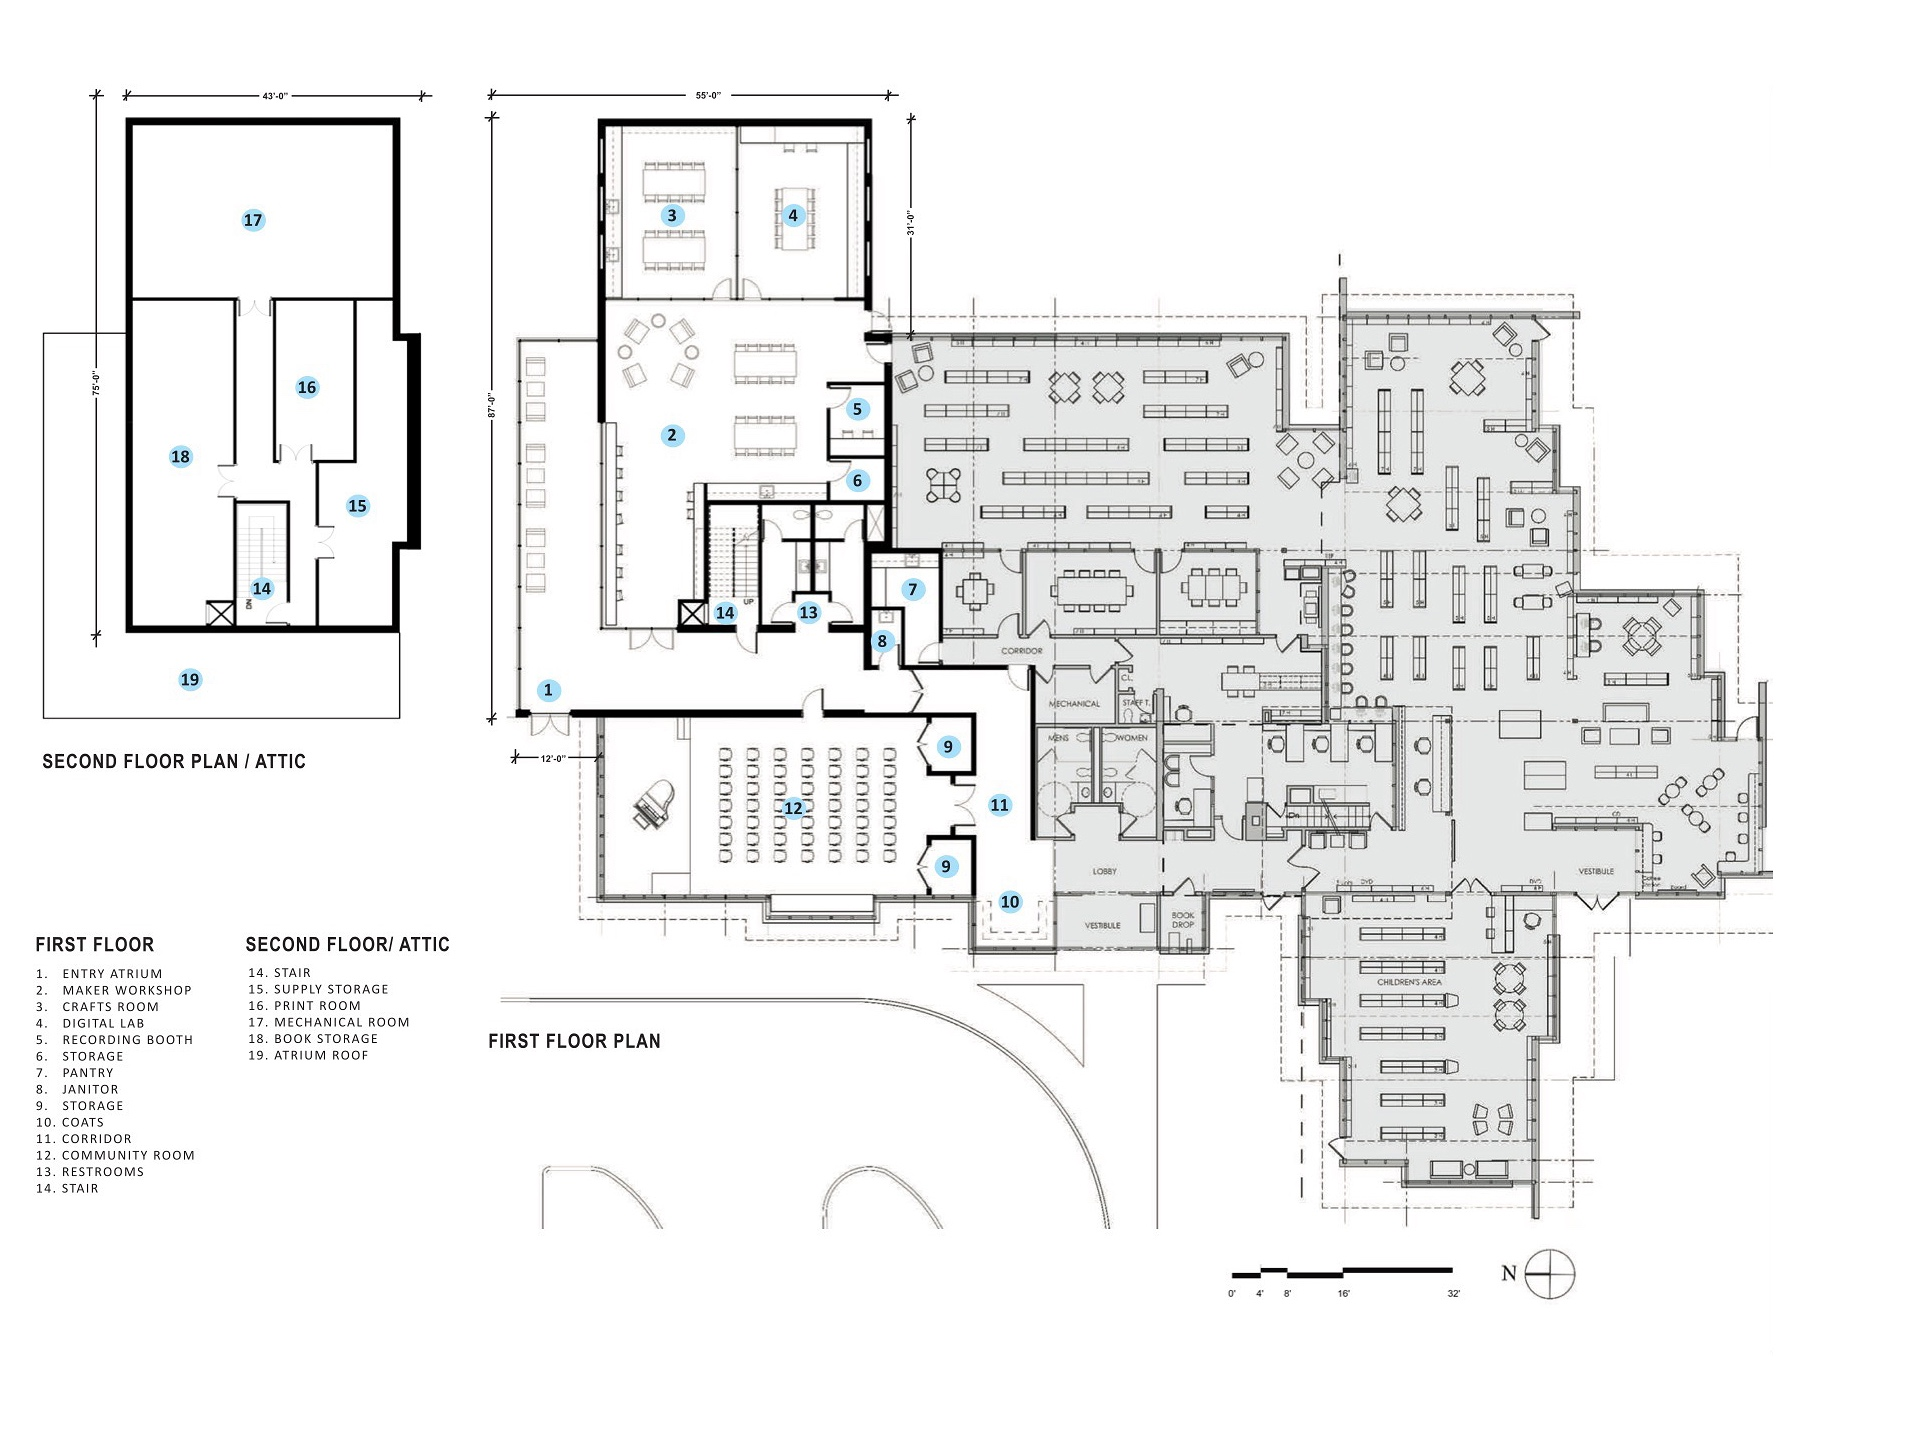 LIBRARY+PLANS_INDESIGN+SD_02.05.2019_11x17+Page+003.jpg